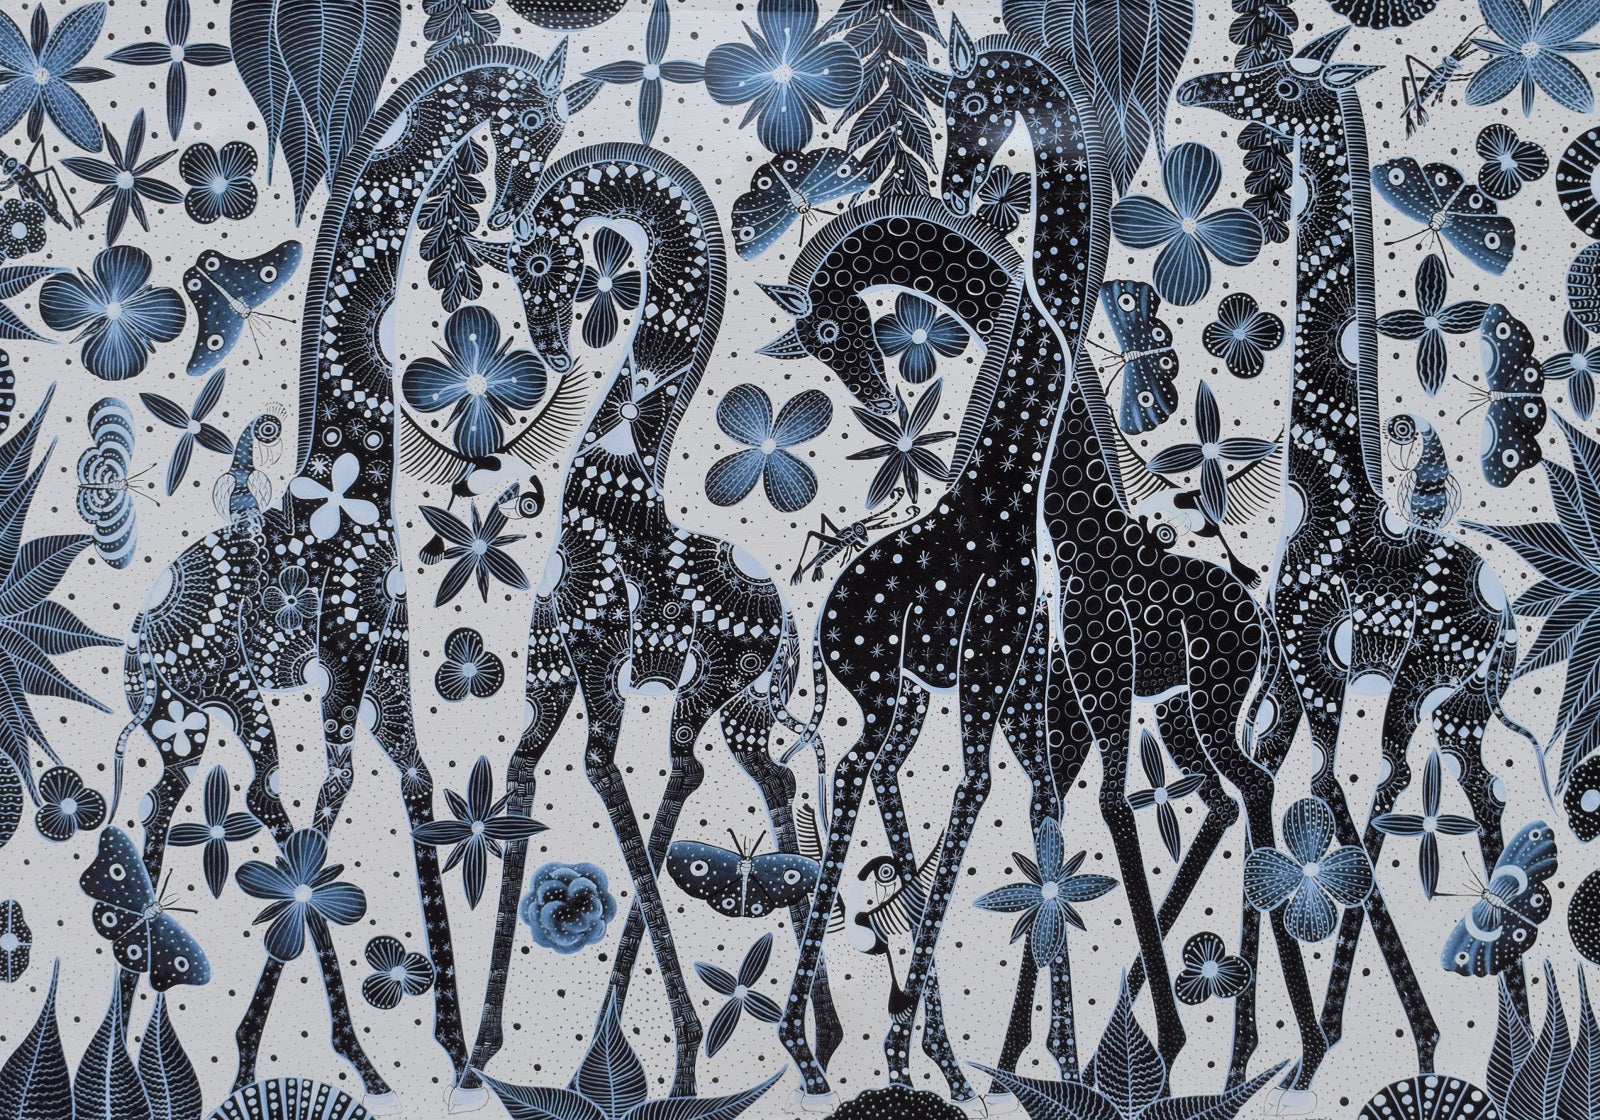 African art of a giraffe for sale